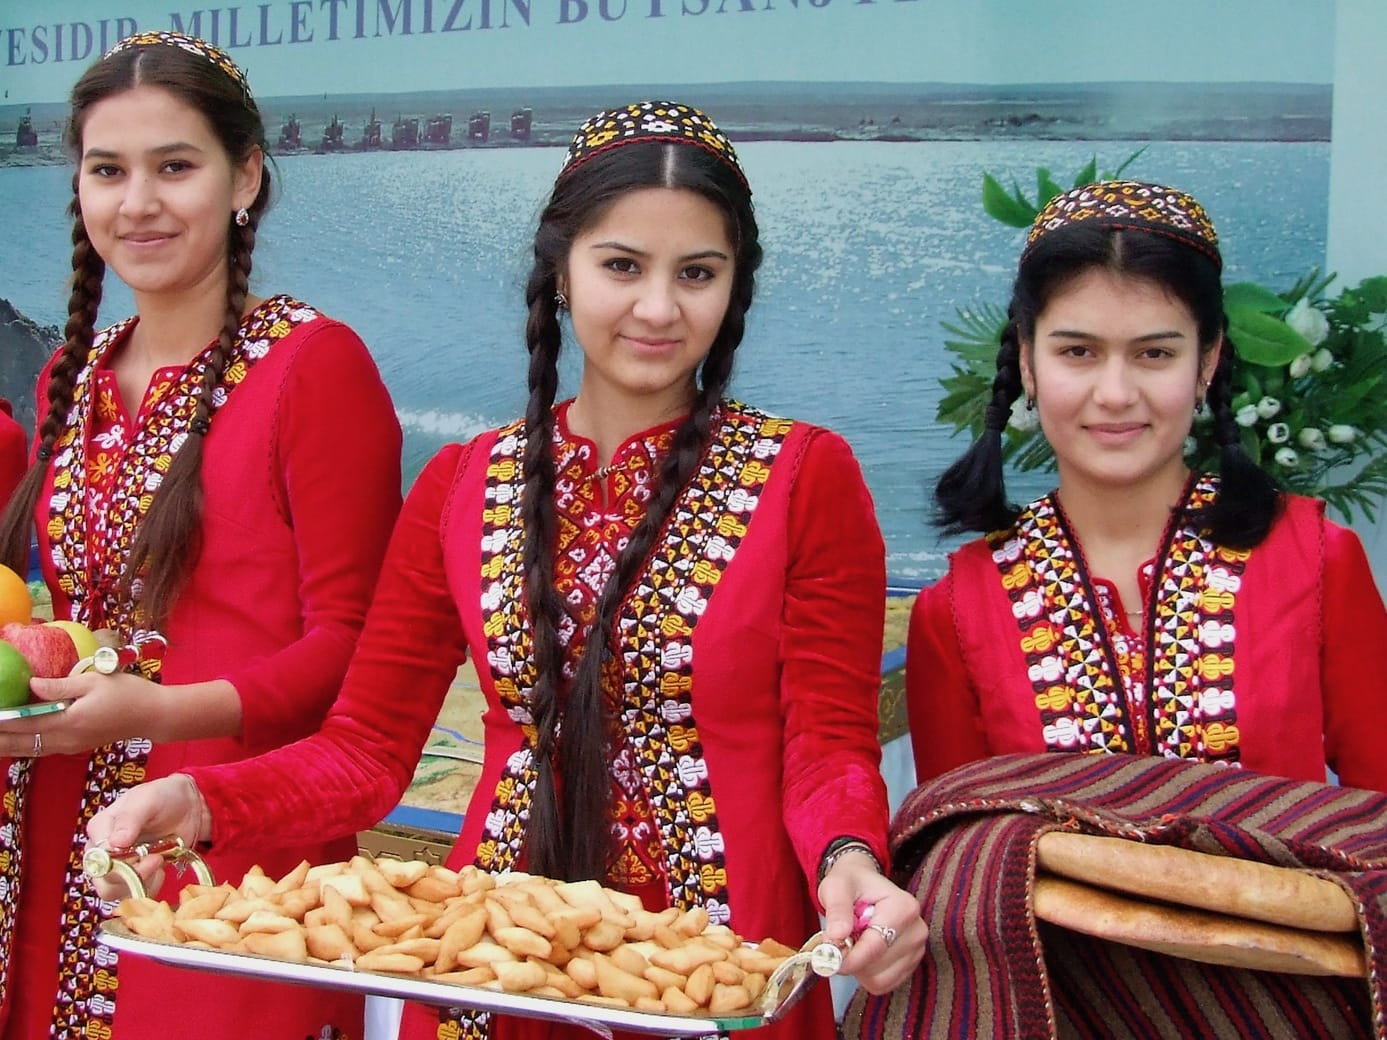 Turkmen girls in traditional outfits